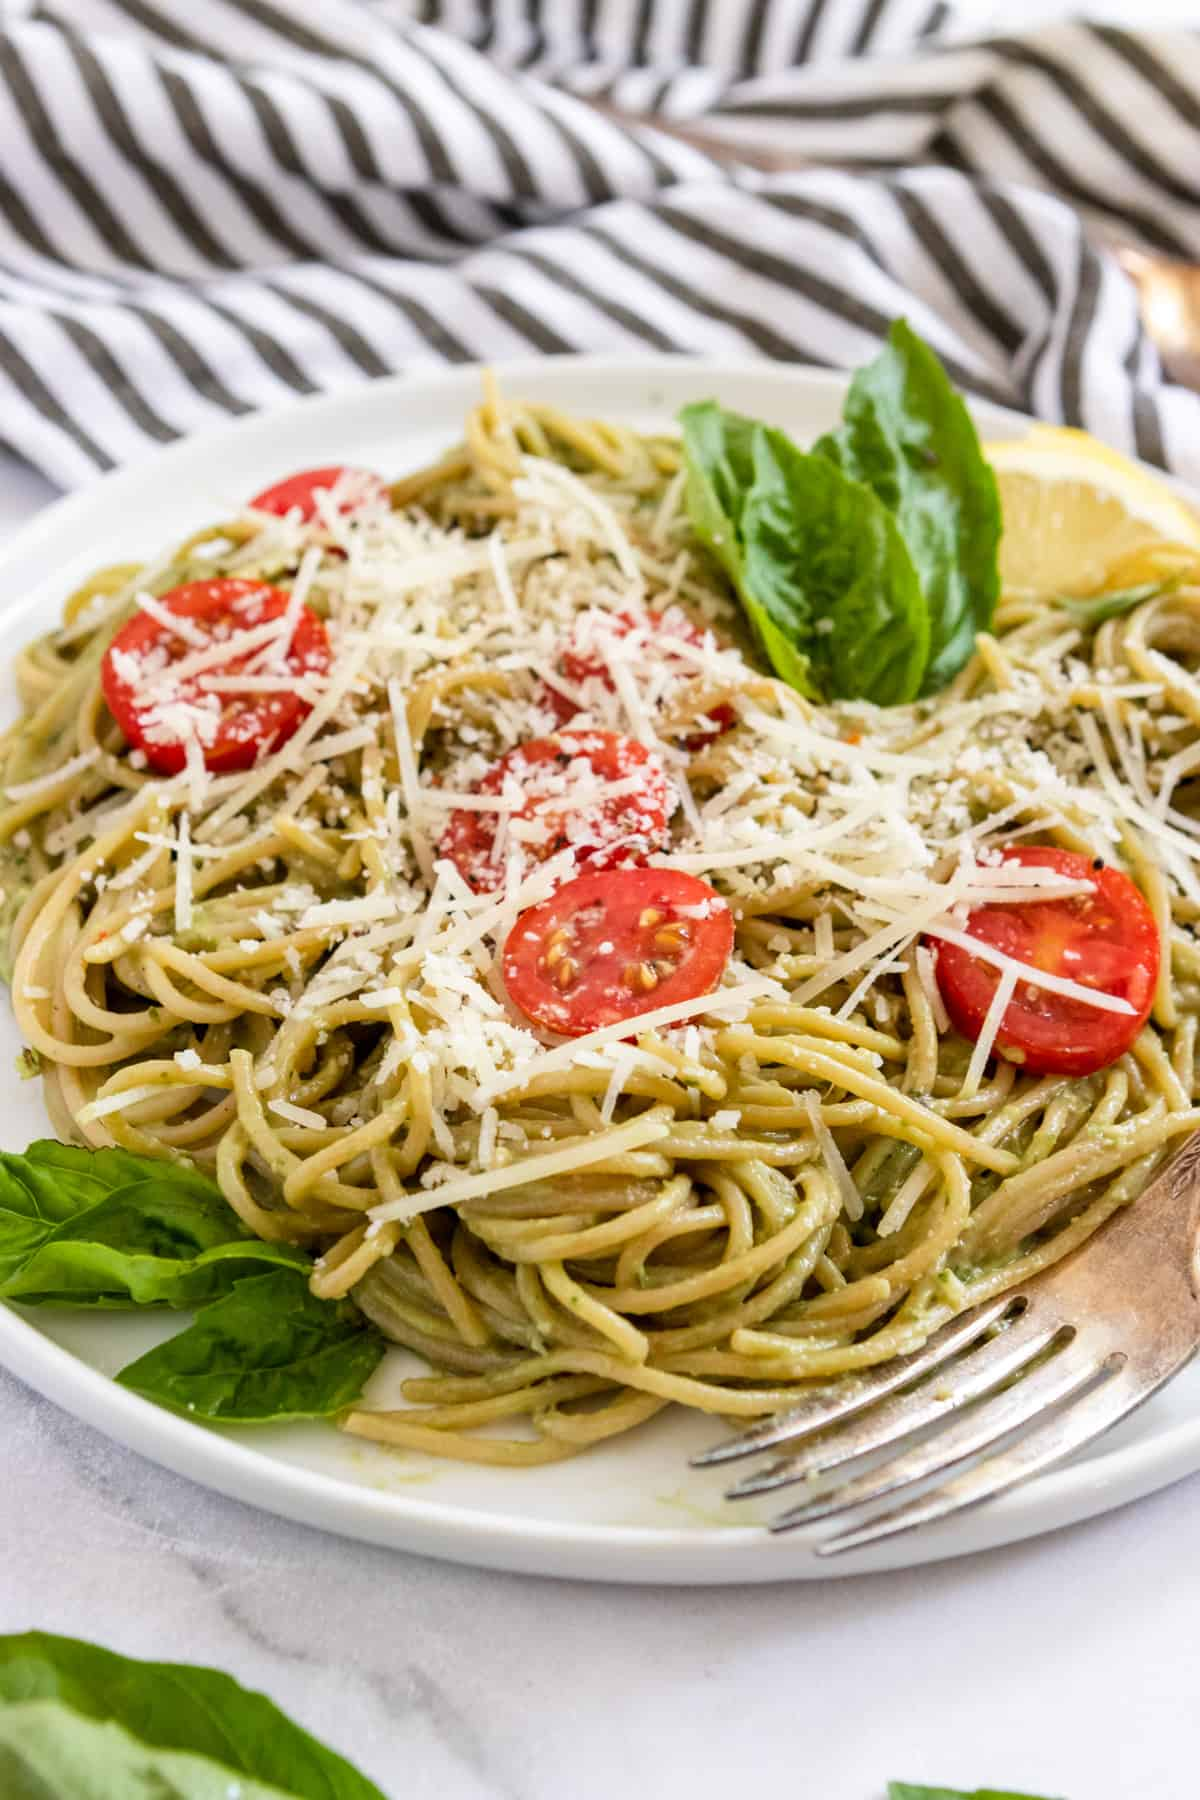 Avocado pesto pasta on white plate with fresh basil and tomatoes.